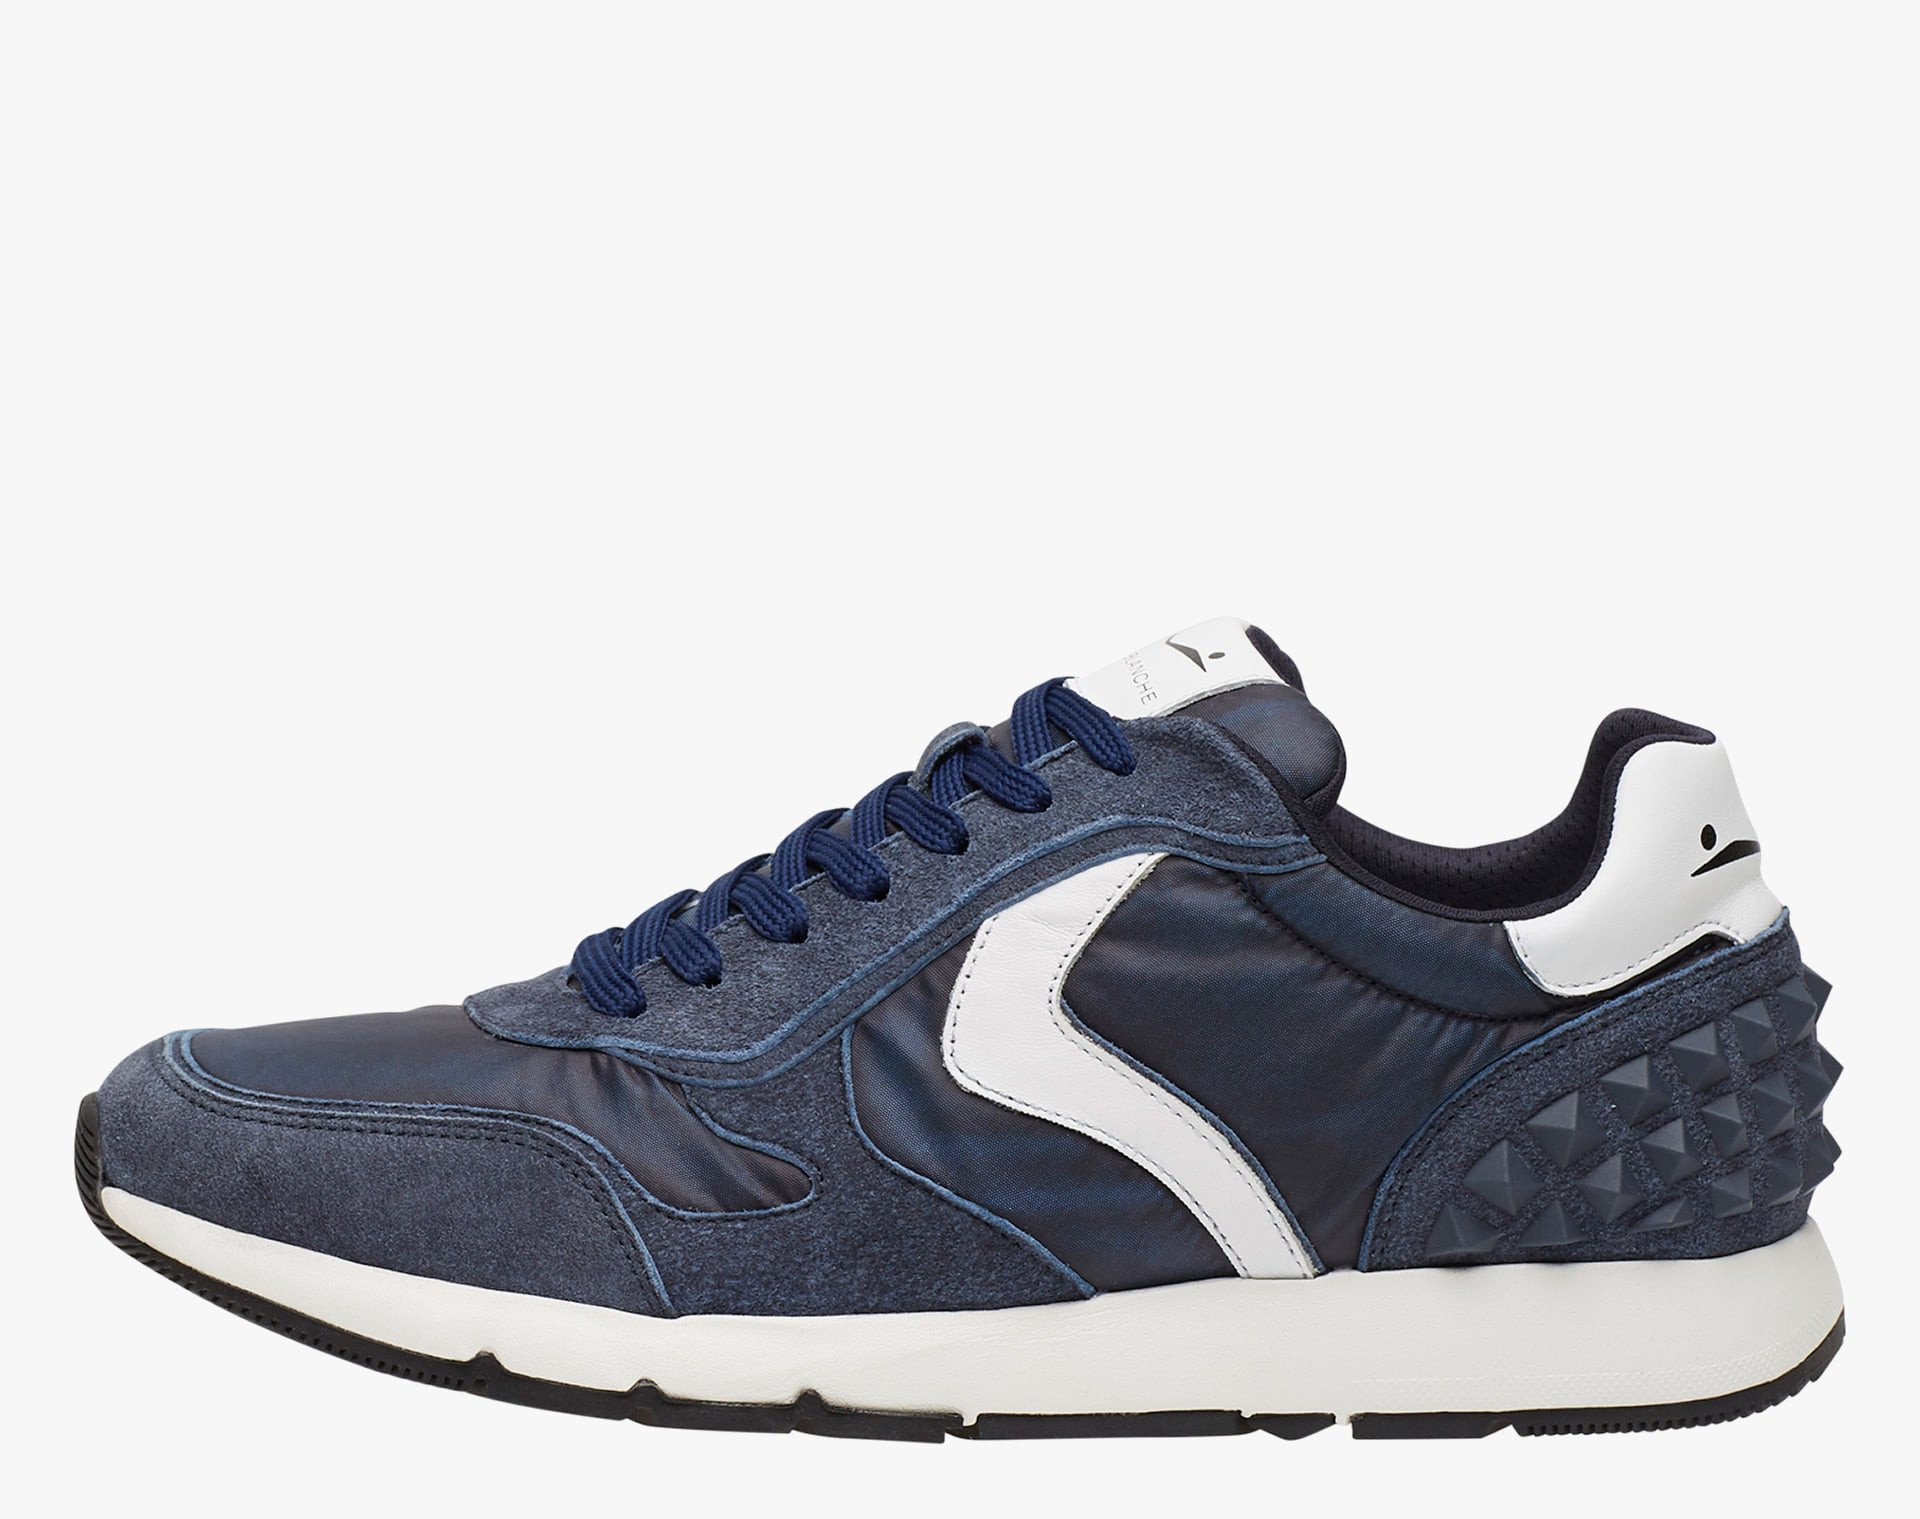 REUBENT STUDS - Sneakers in leather and nylon - Blue-White